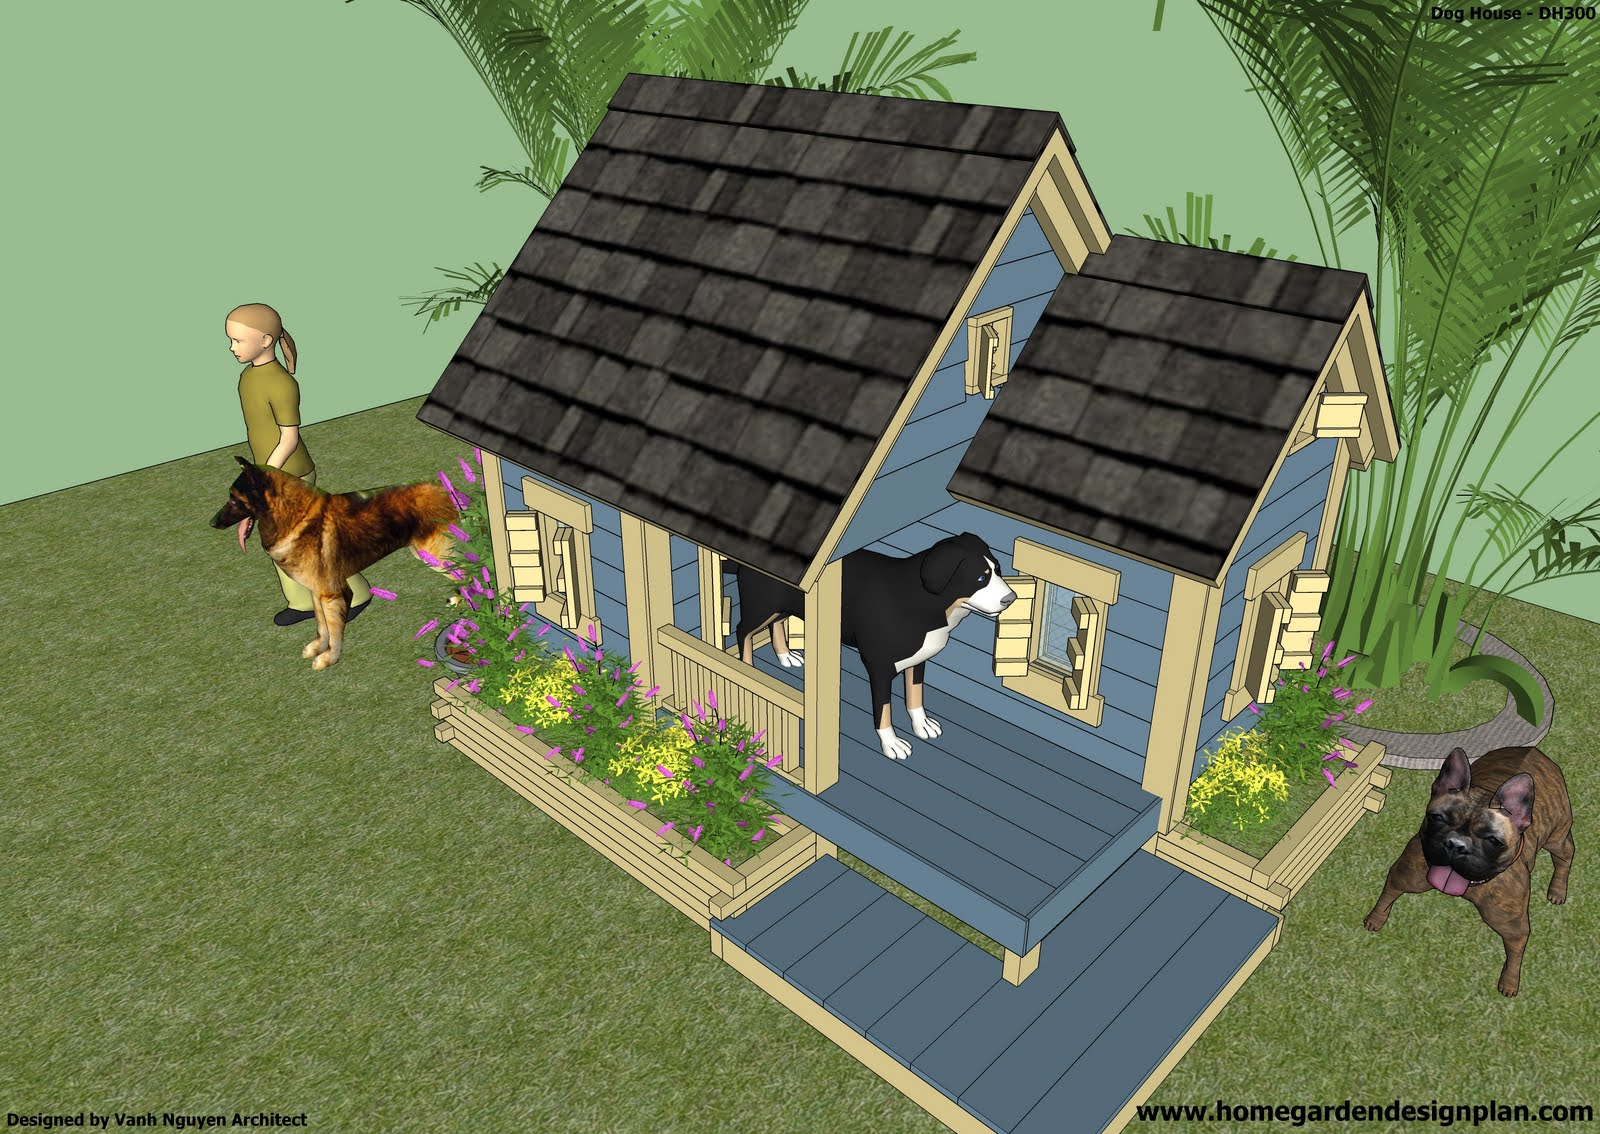 How To Build A Dog House Blueprint Home Improvement